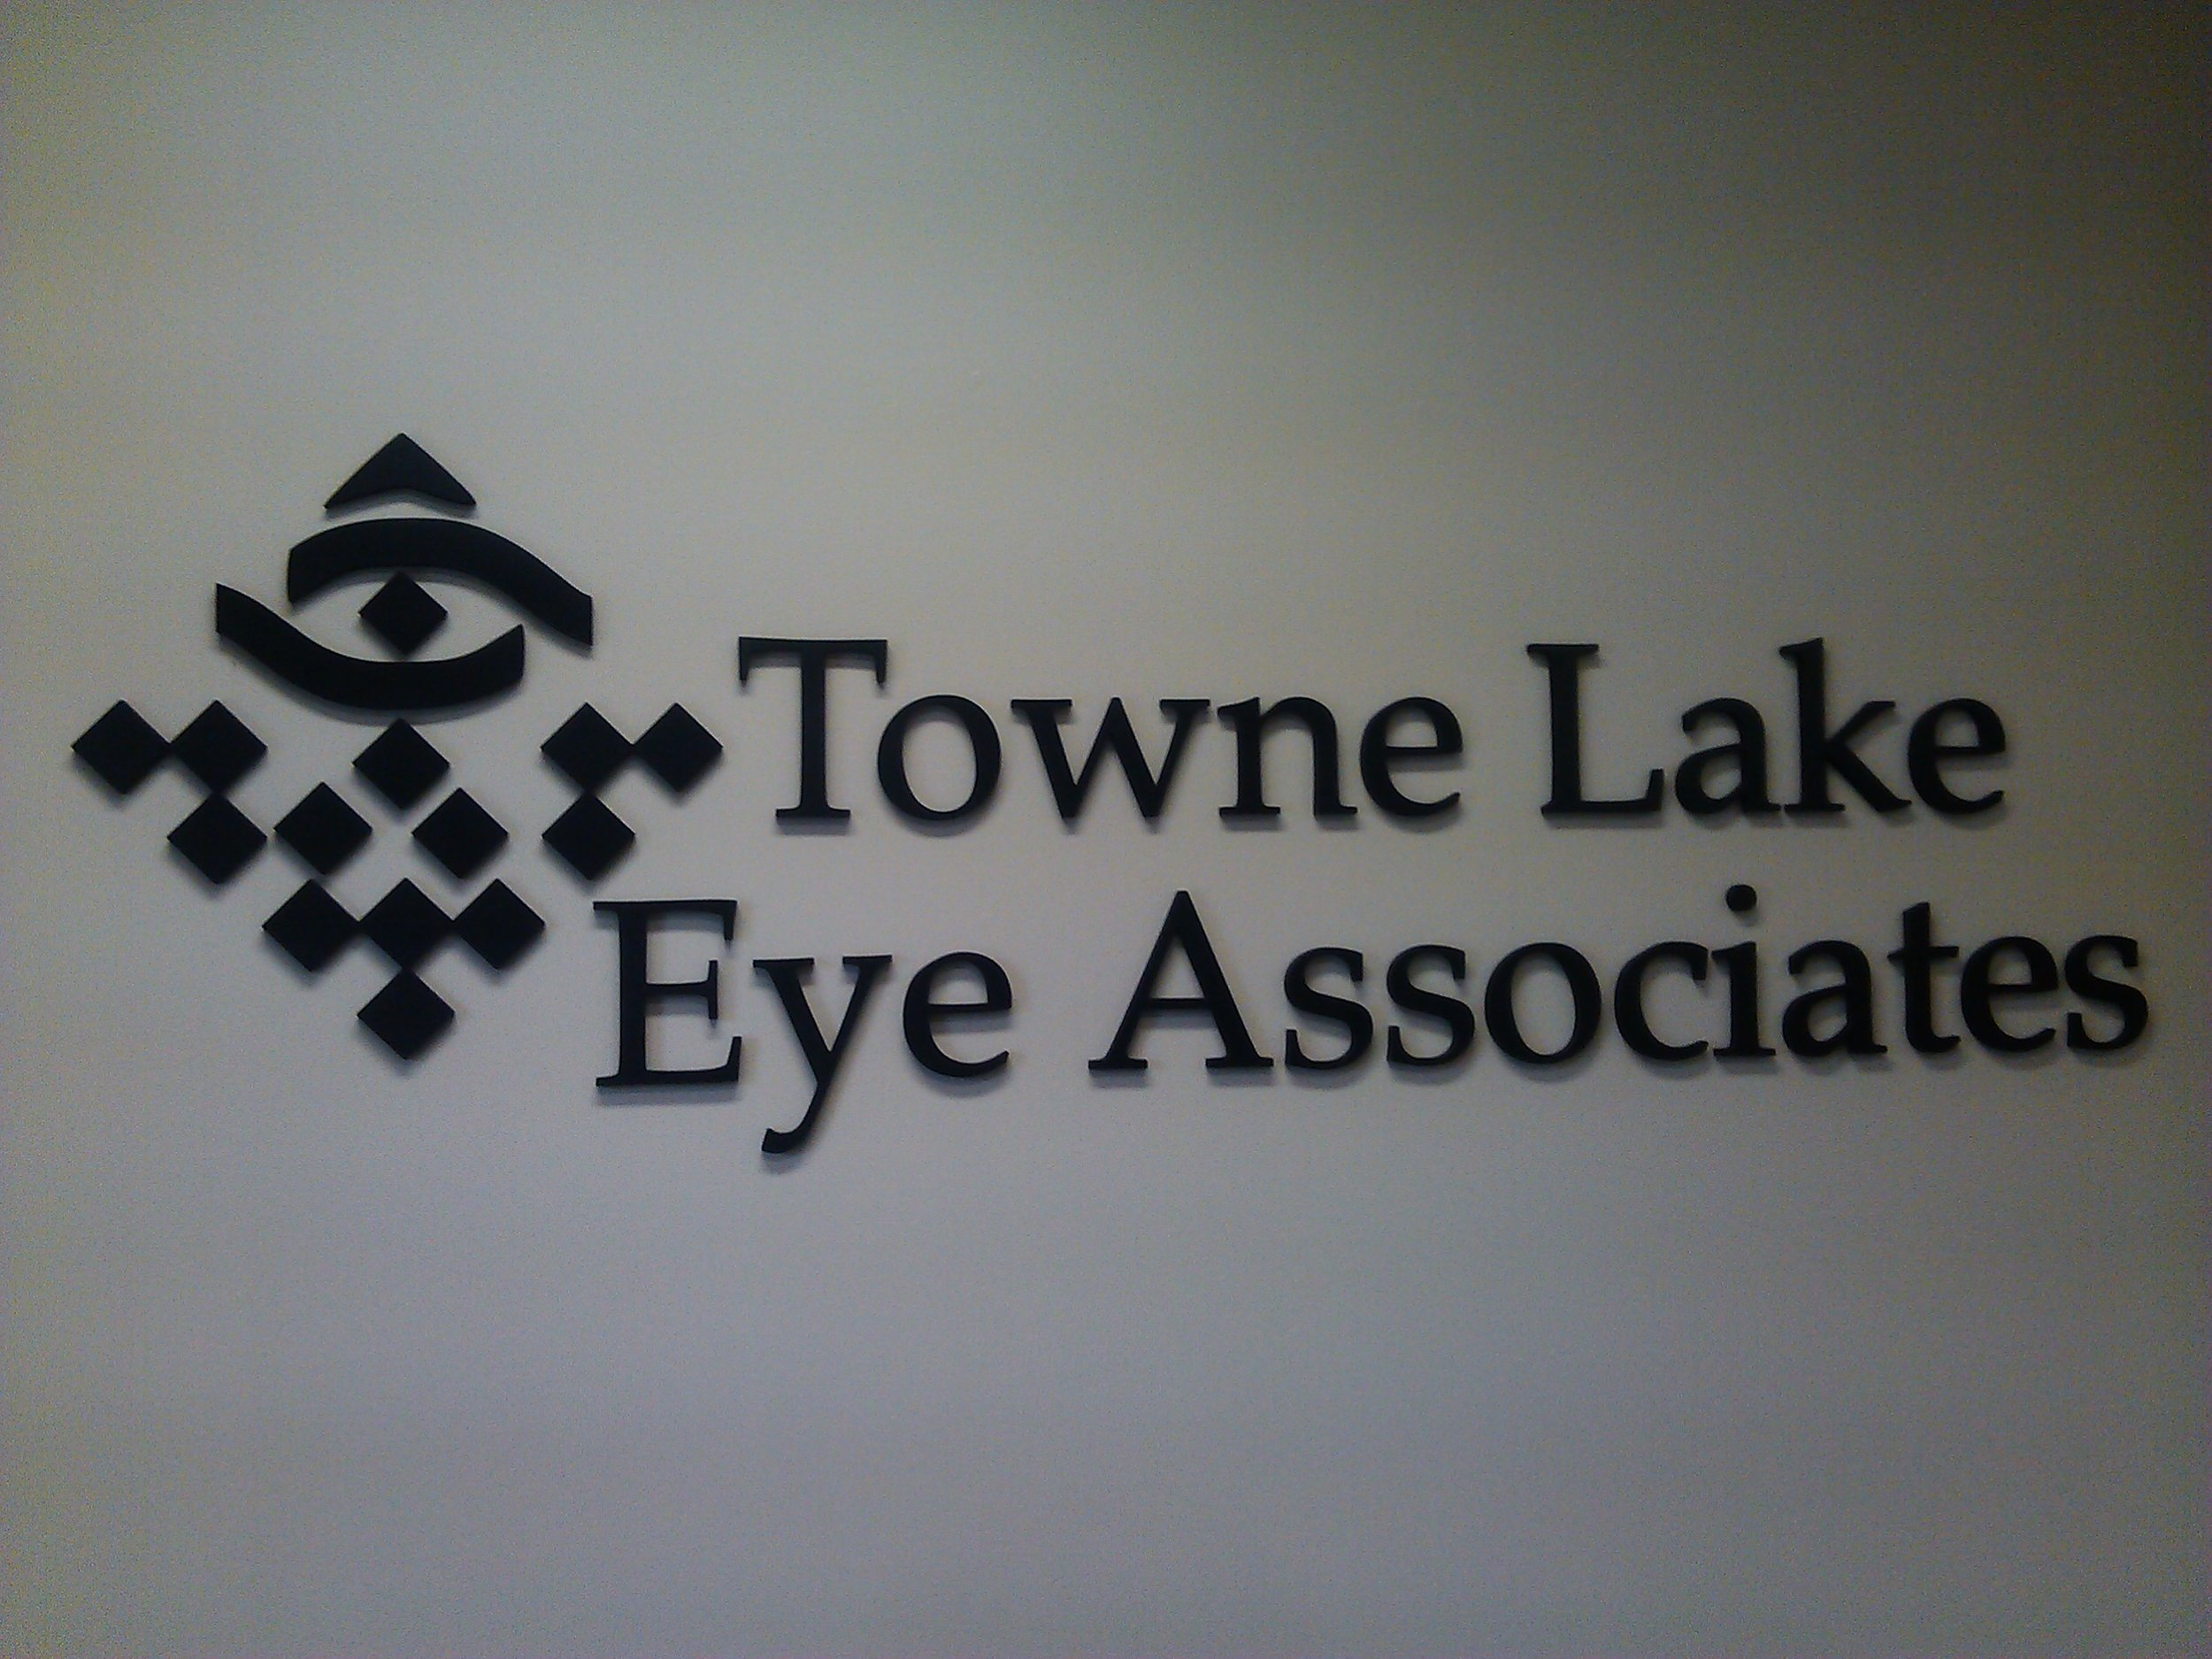 towne lake eye associates.jpg